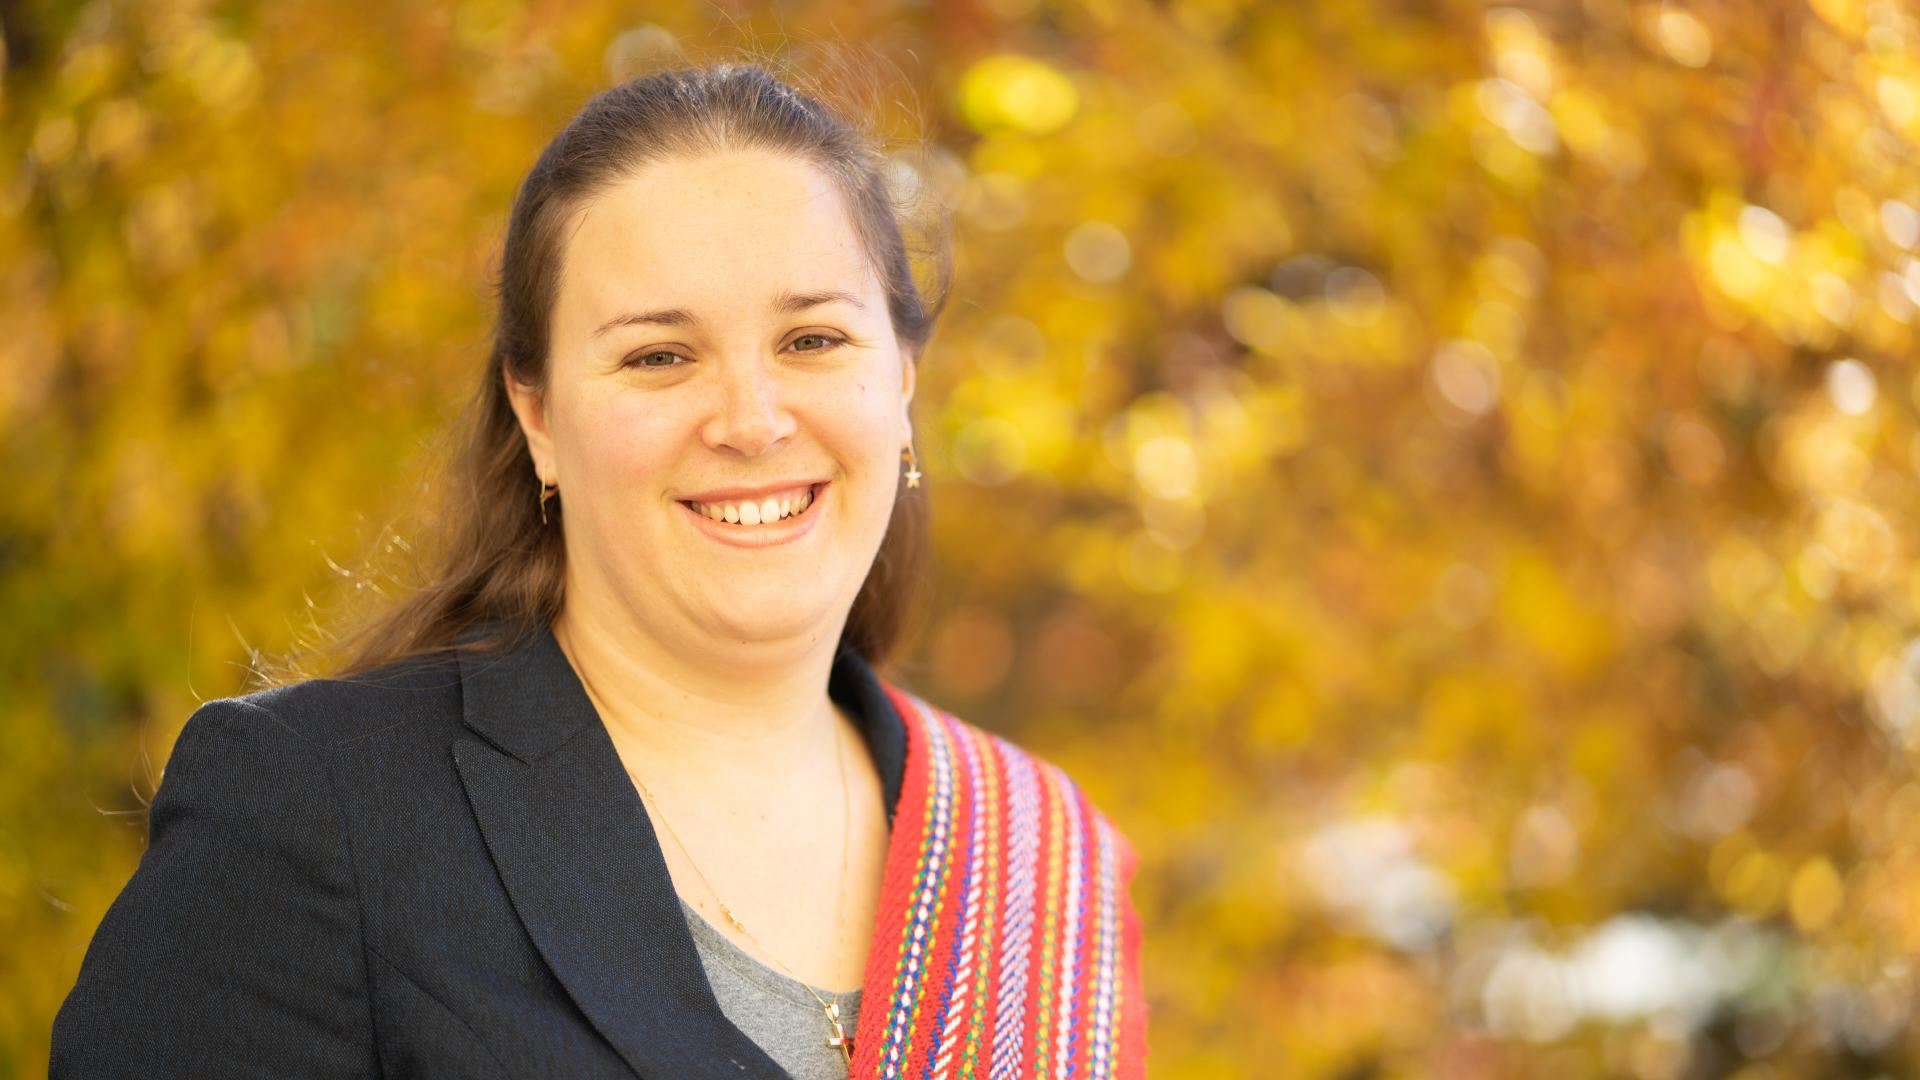 Research awards will support Indigenous women's health